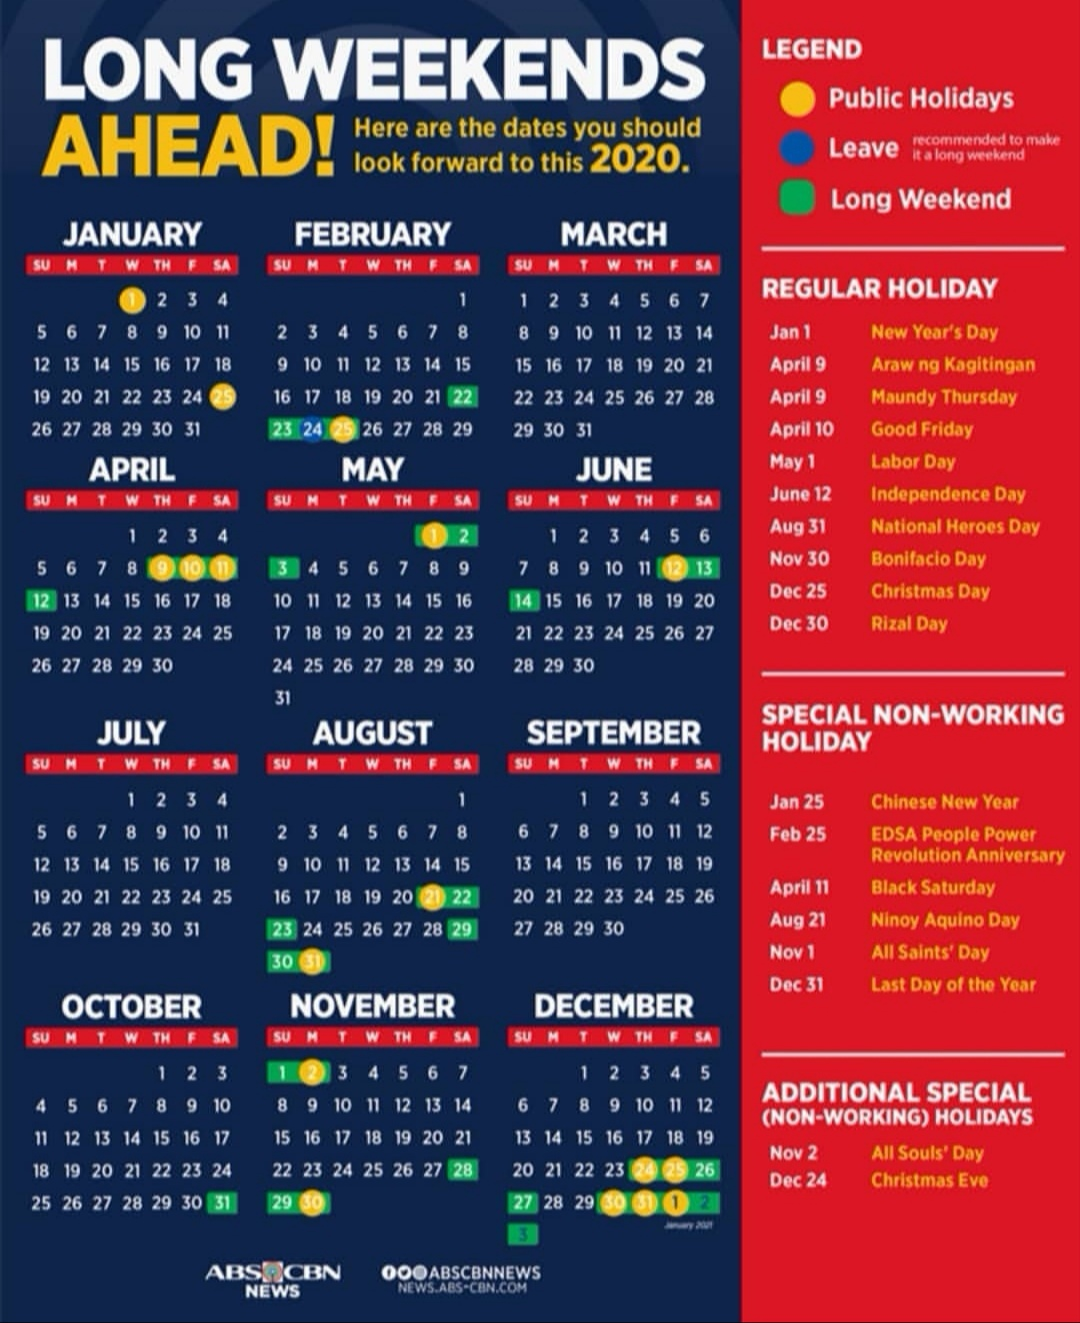 Guide to Philippine Holidays for 2020